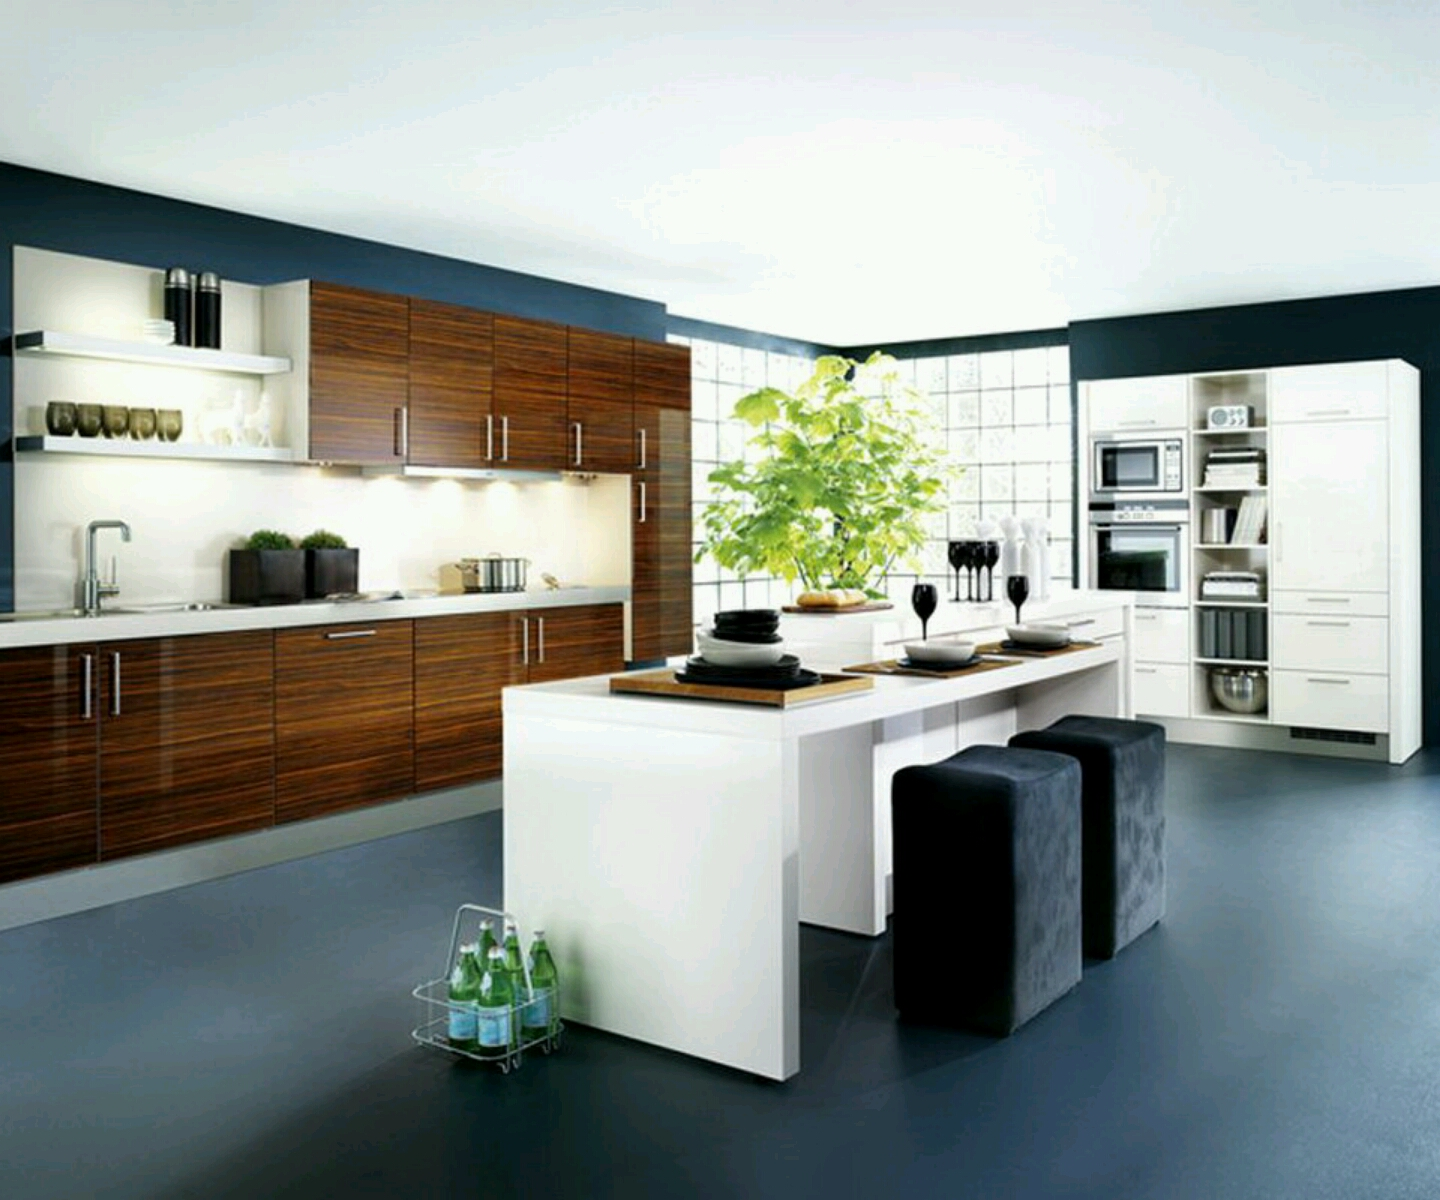 New home designs latest kitchen cabinets designs modern for Modern kitchen cabinet design